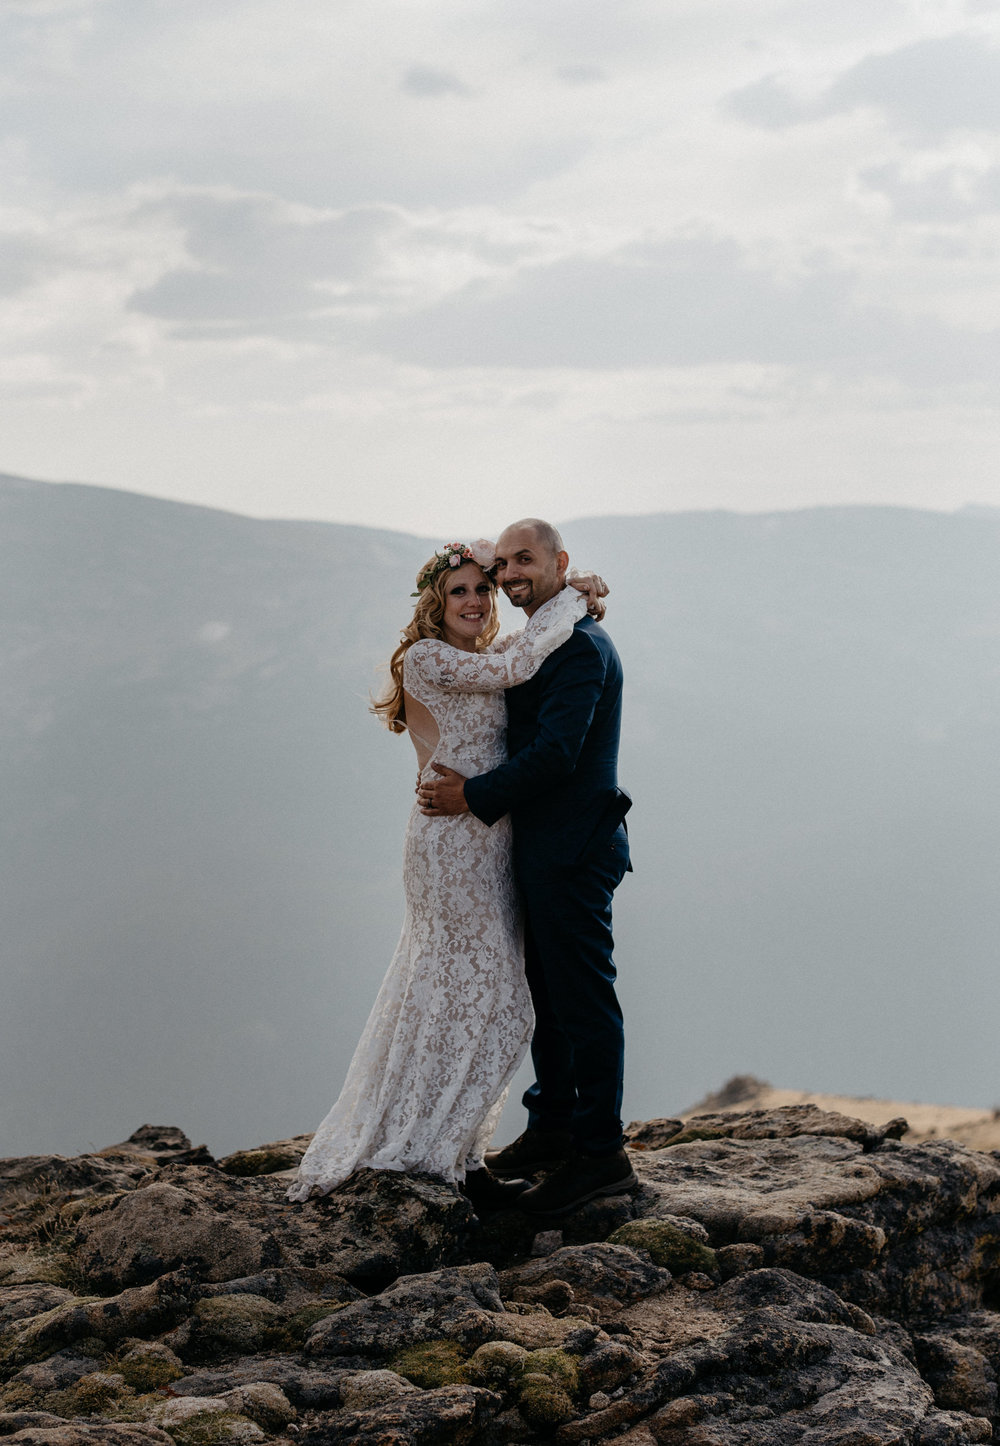 Colorado intimate wedding and elopement photographer.. RMNP elopement.